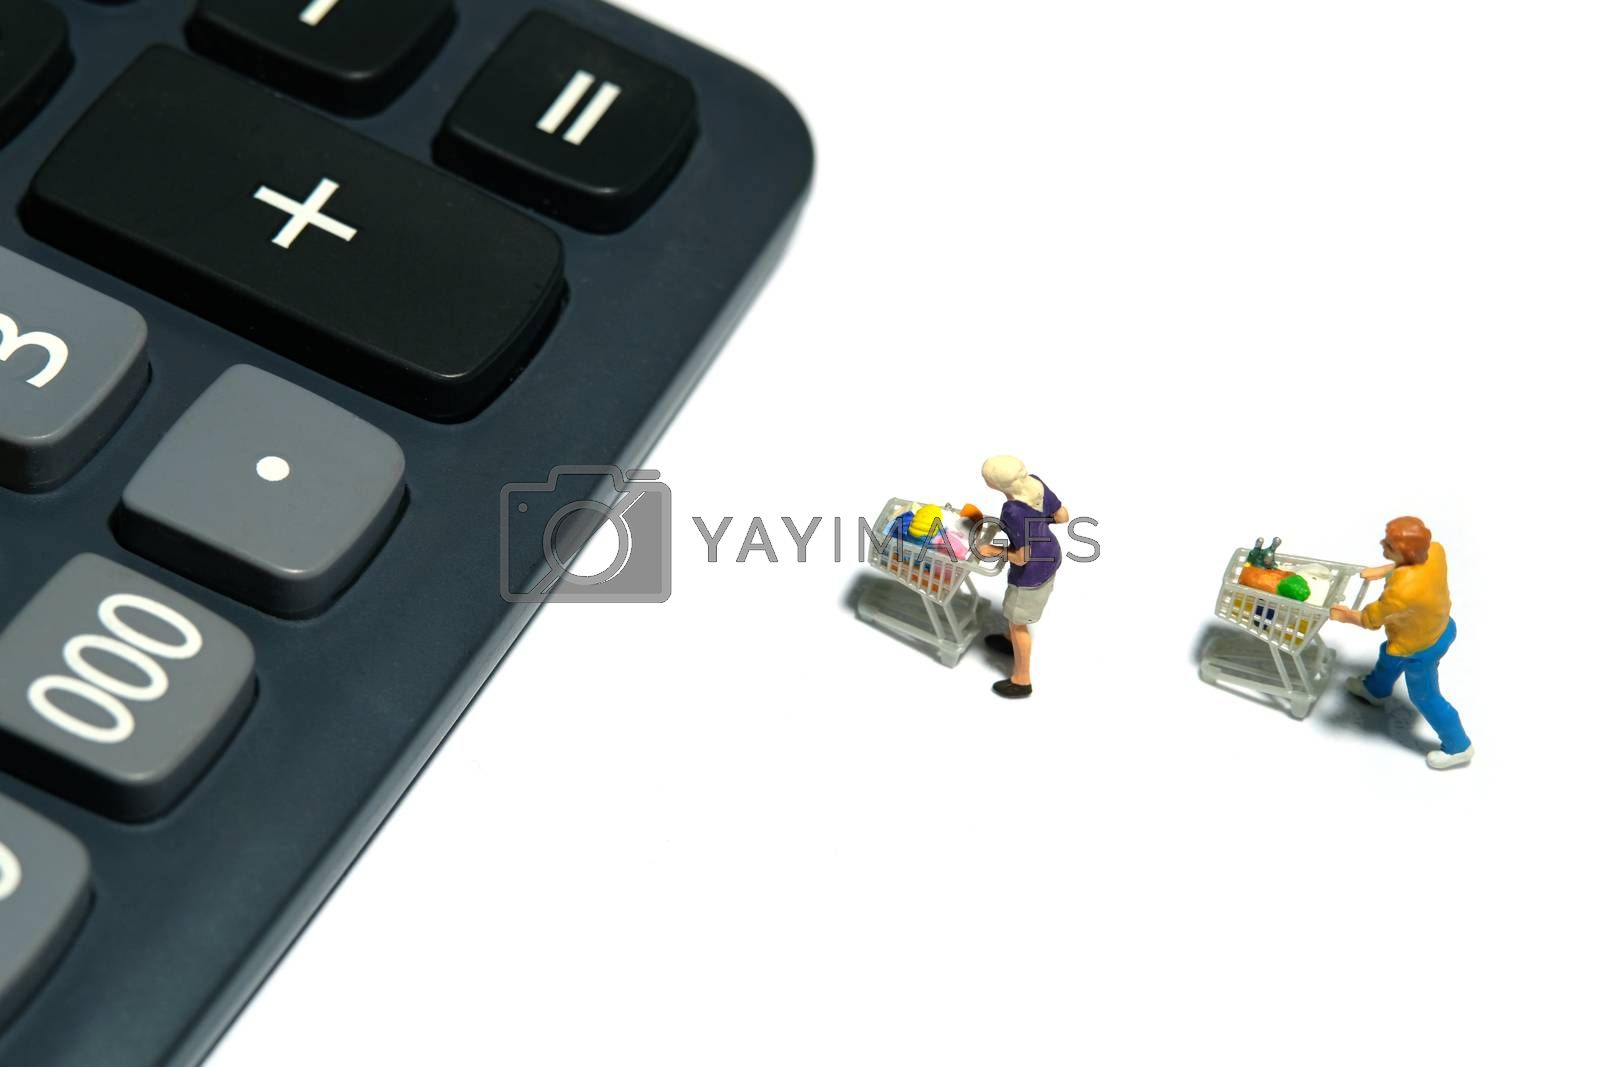 Miniature people figurines toys conceptual photography.people with cart lining up to calculator, calculate total purchase for groceries. Miniature people figurines toys conceptual photography.